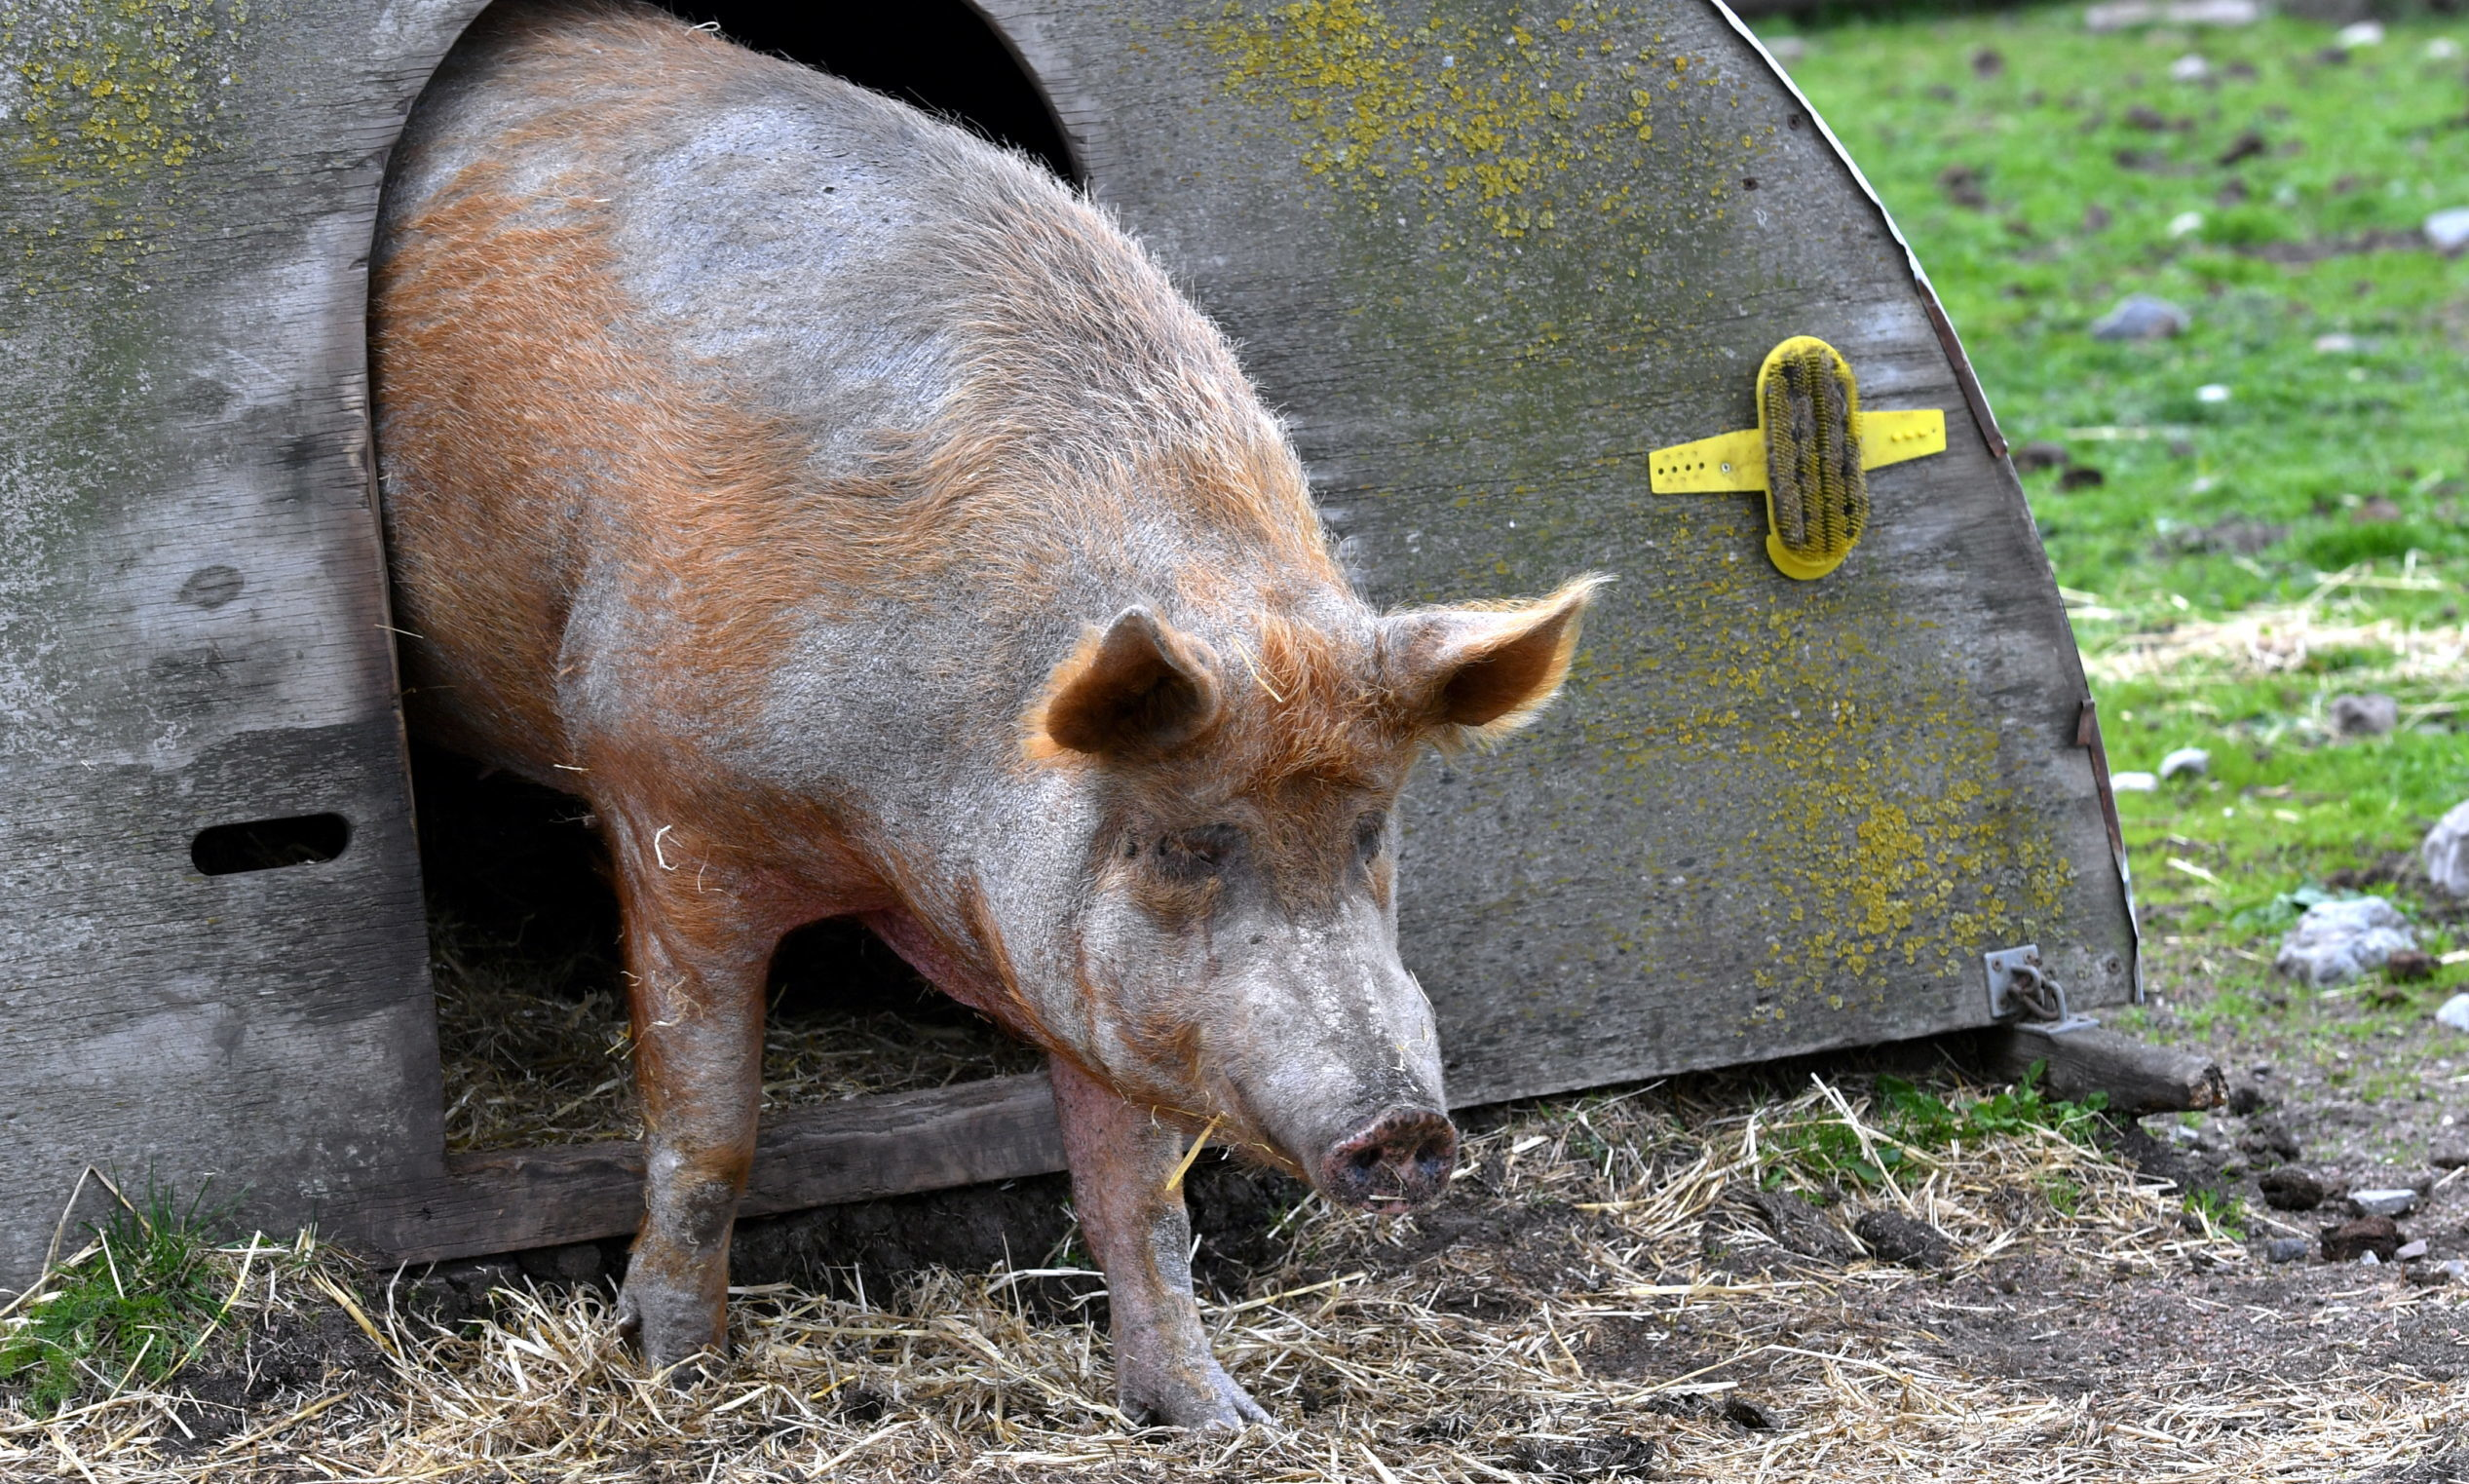 A pig at Doonies Rare Breeds Farm in Aberdeen. Picture by Kami Thomson